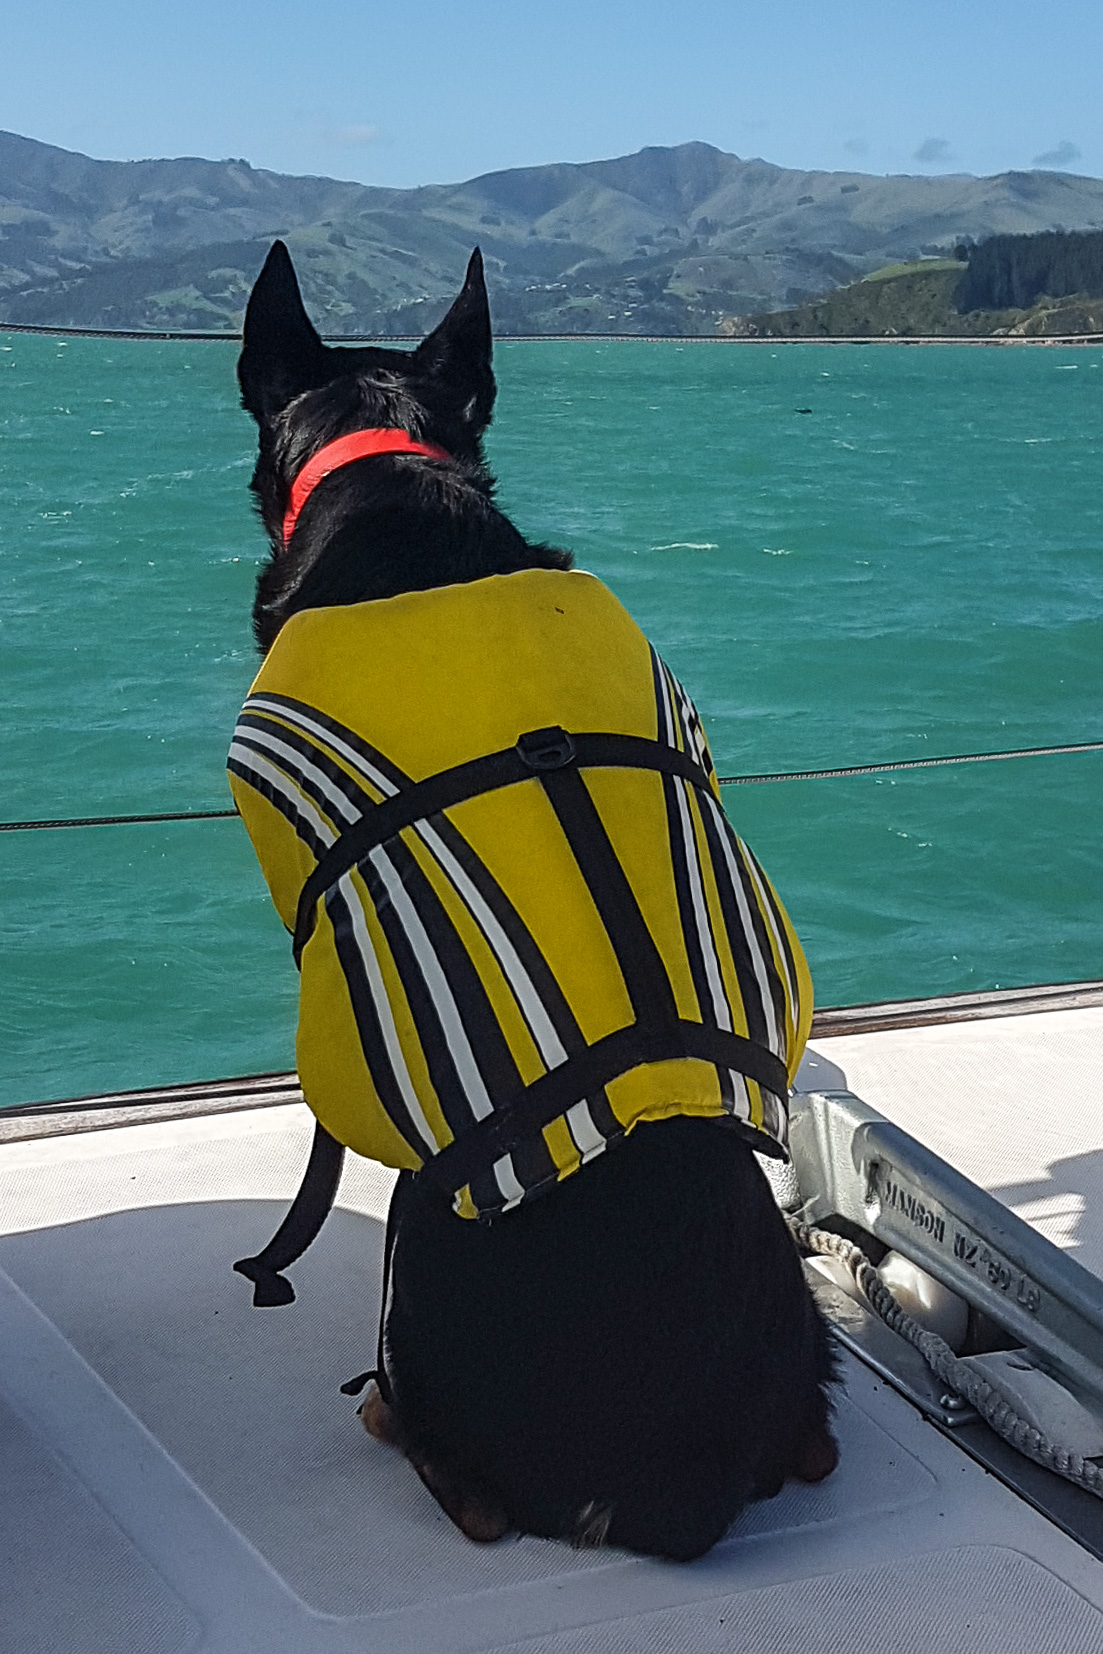 Jet our dolphin spotting dog...... unfortunately didn't capture any images of the dolphins!